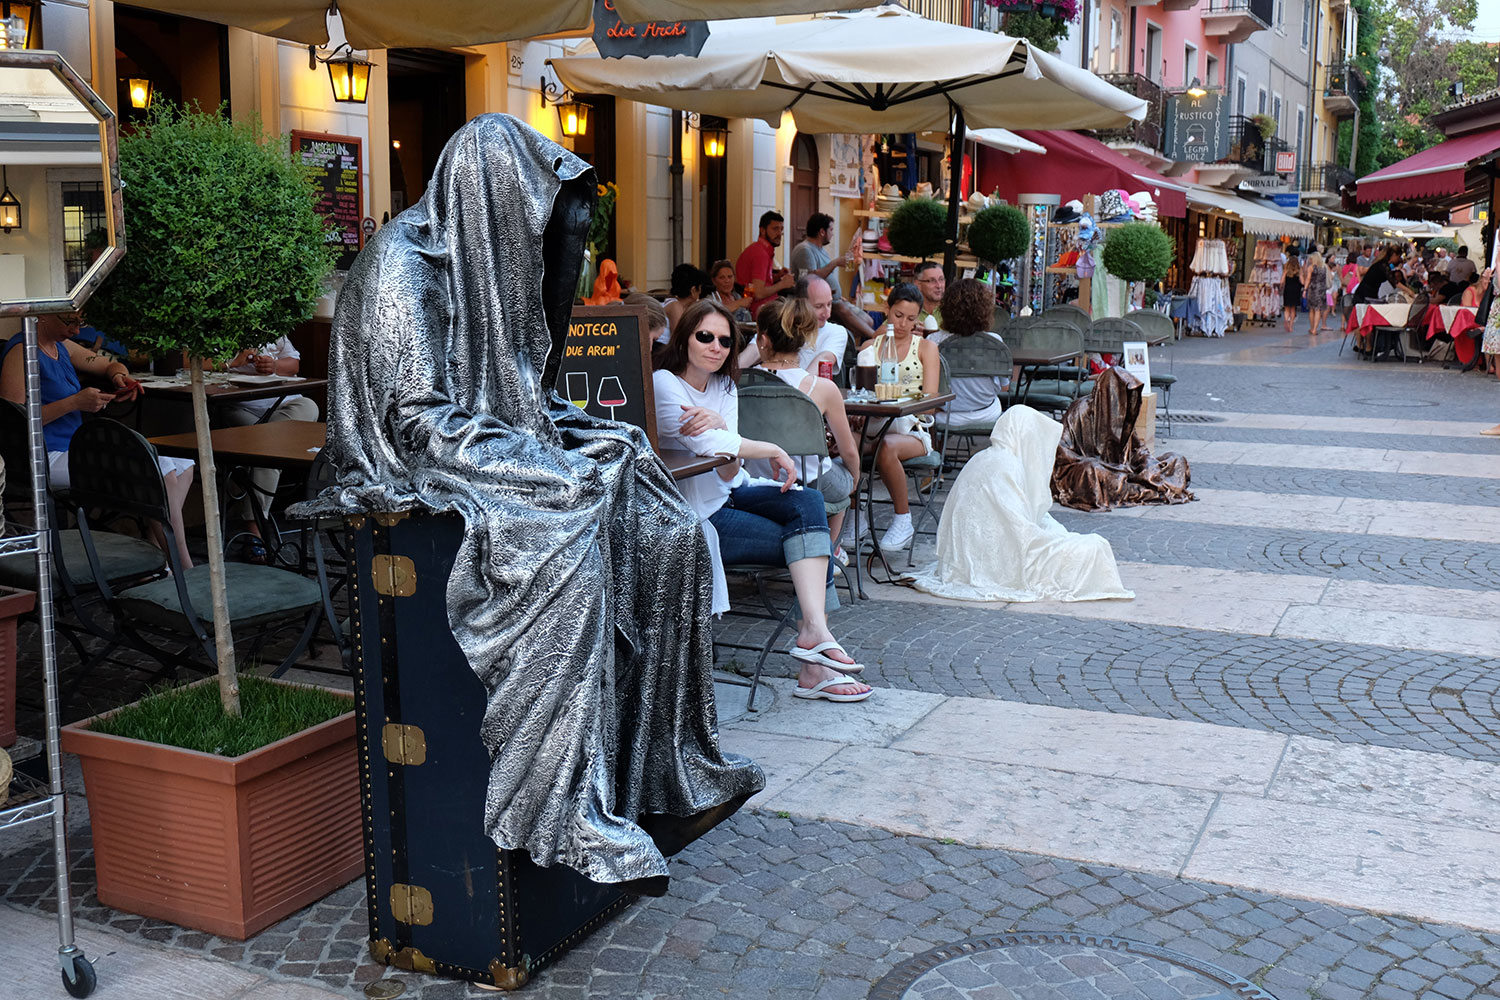 monika-kouba-designkooperative-lazise-largo-de-guarda-guardians-of-time-manfred-kili-kielnhofer-contemporary-art-design-ats-arte-sculpture-chirge-religion-3727